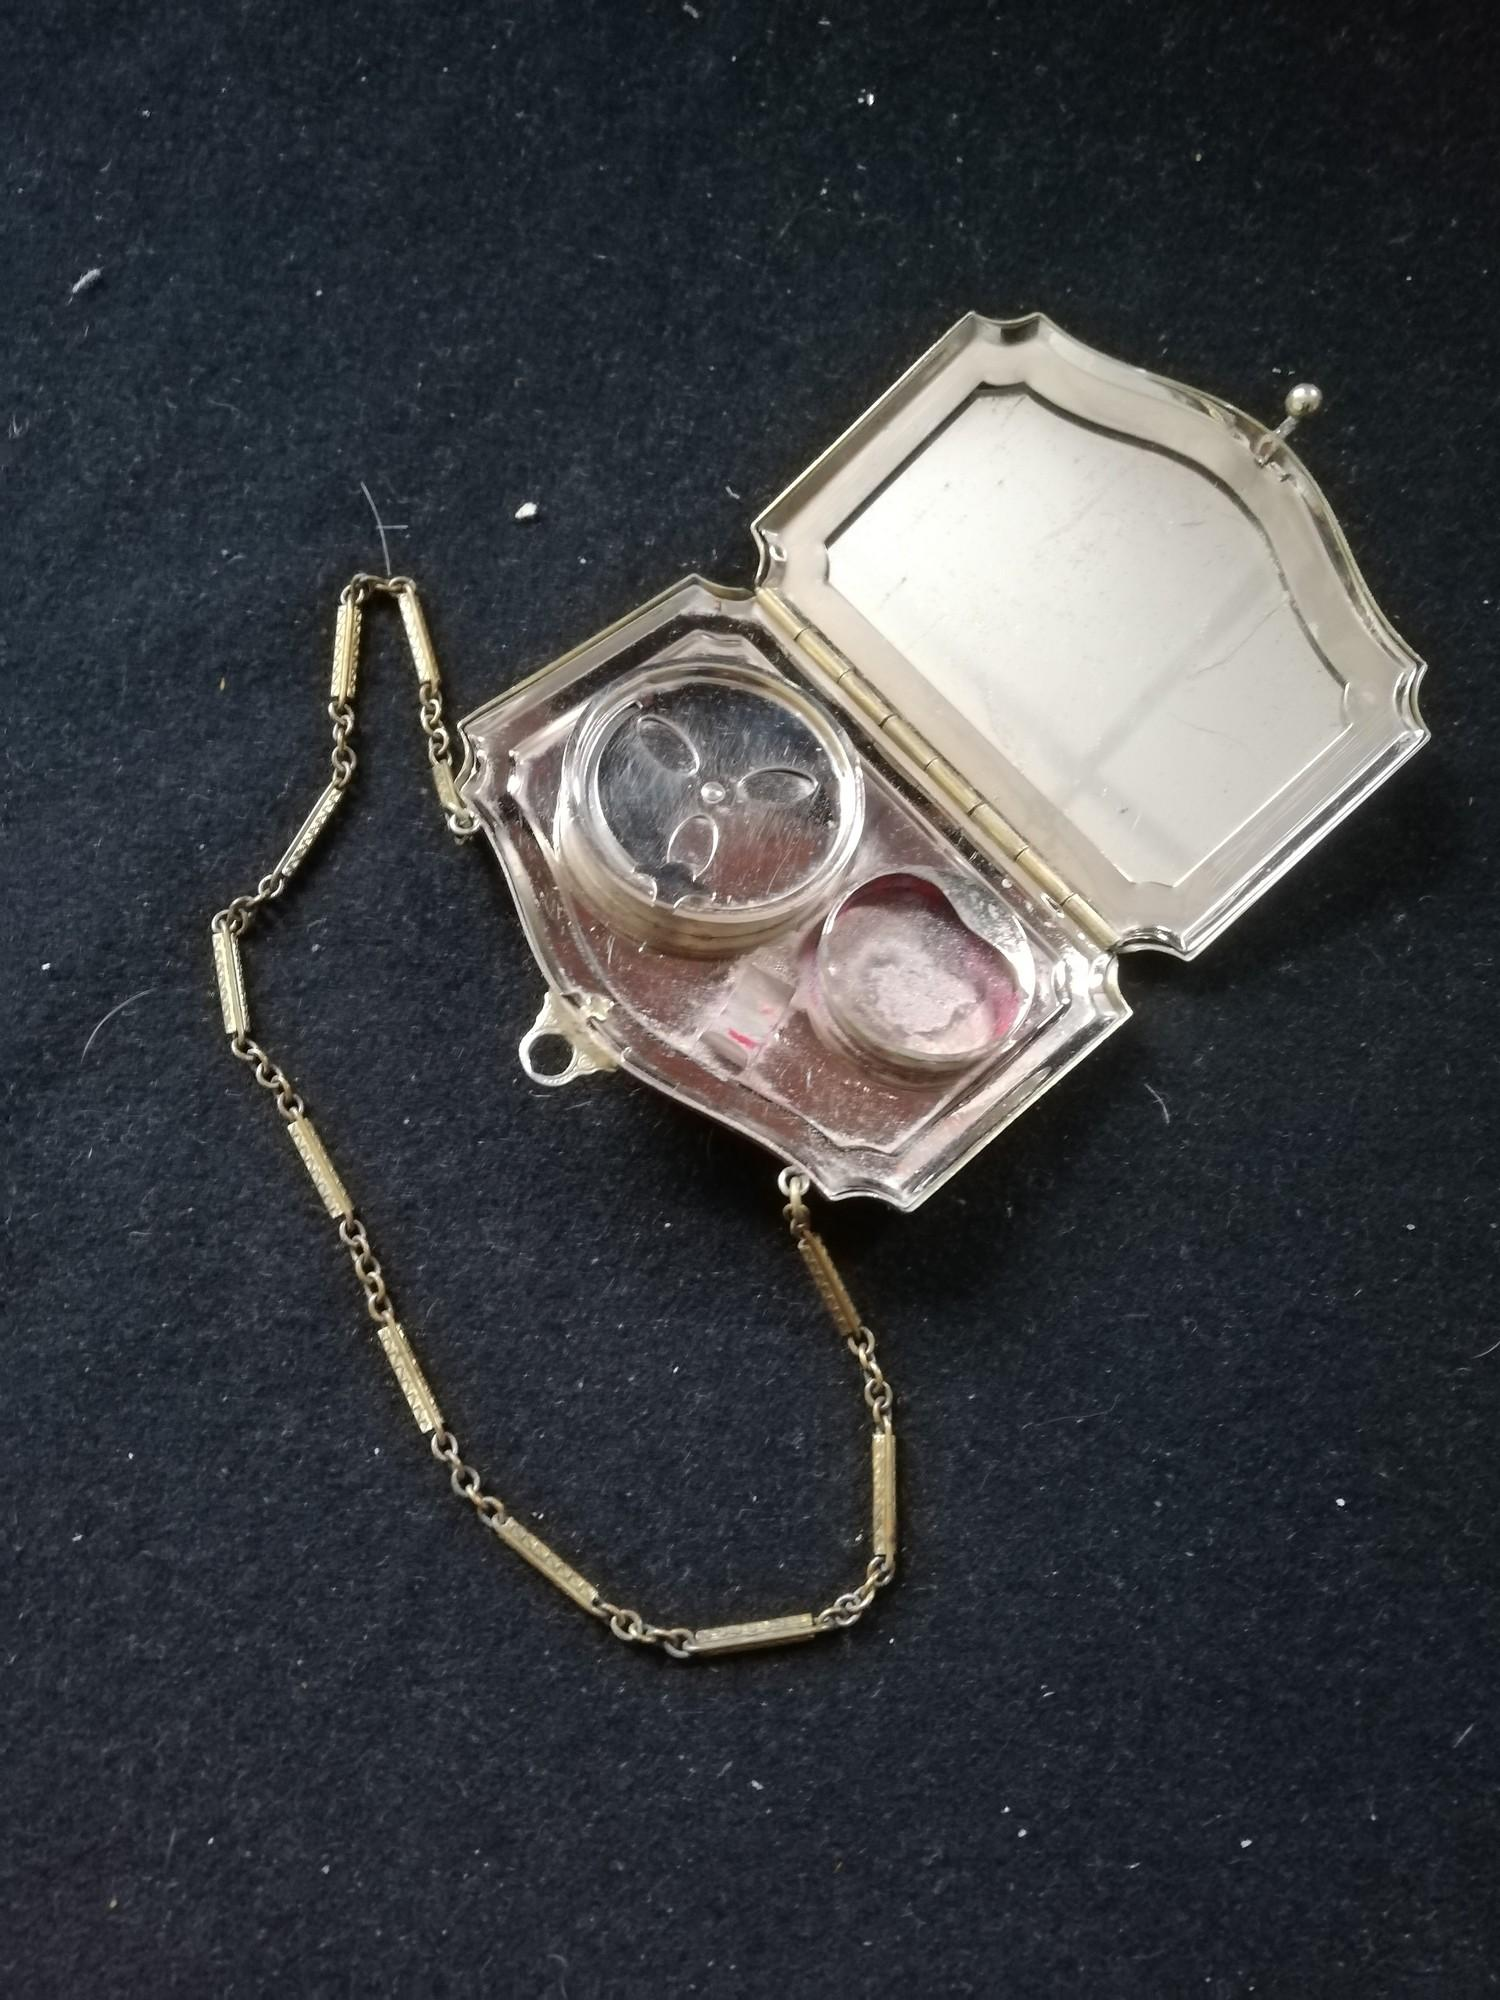 Lot 123 - 1930's American vanity case / compact designed as a bag with enamelled plaque to front